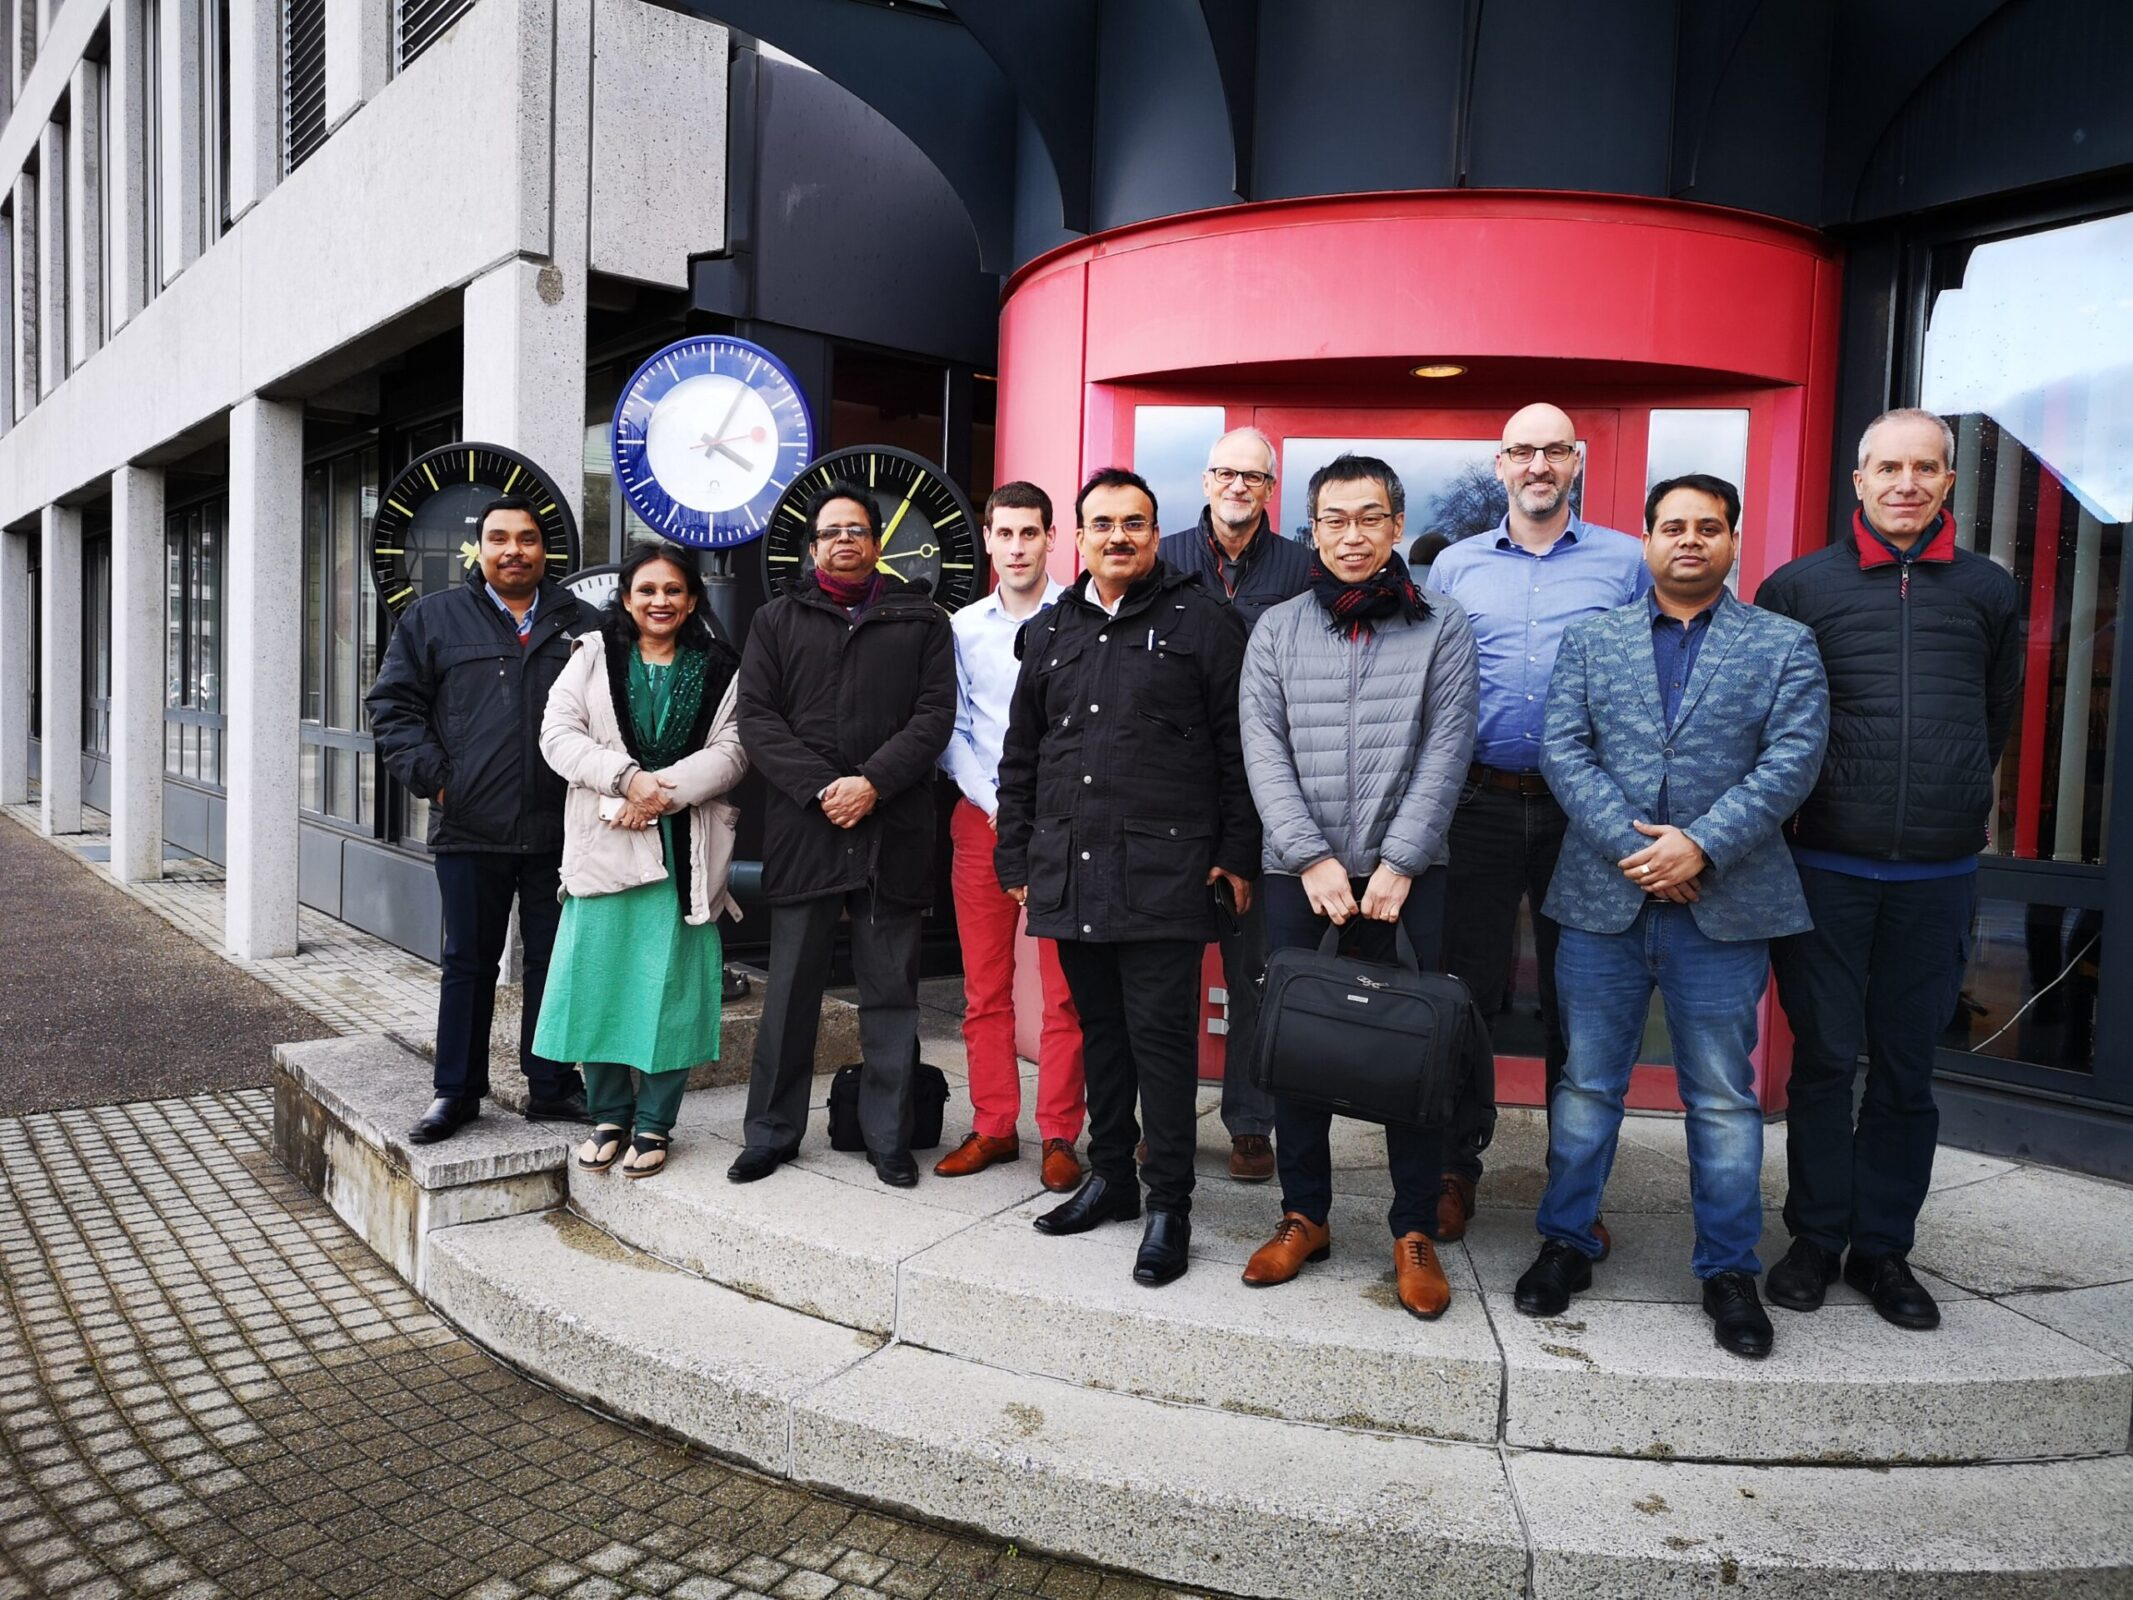 Senior Delegation representing the Dhaka Metro officials in Sumiswald with MOBATIME Team Members in front of MOBATIME Building, Analogue clocks behind left